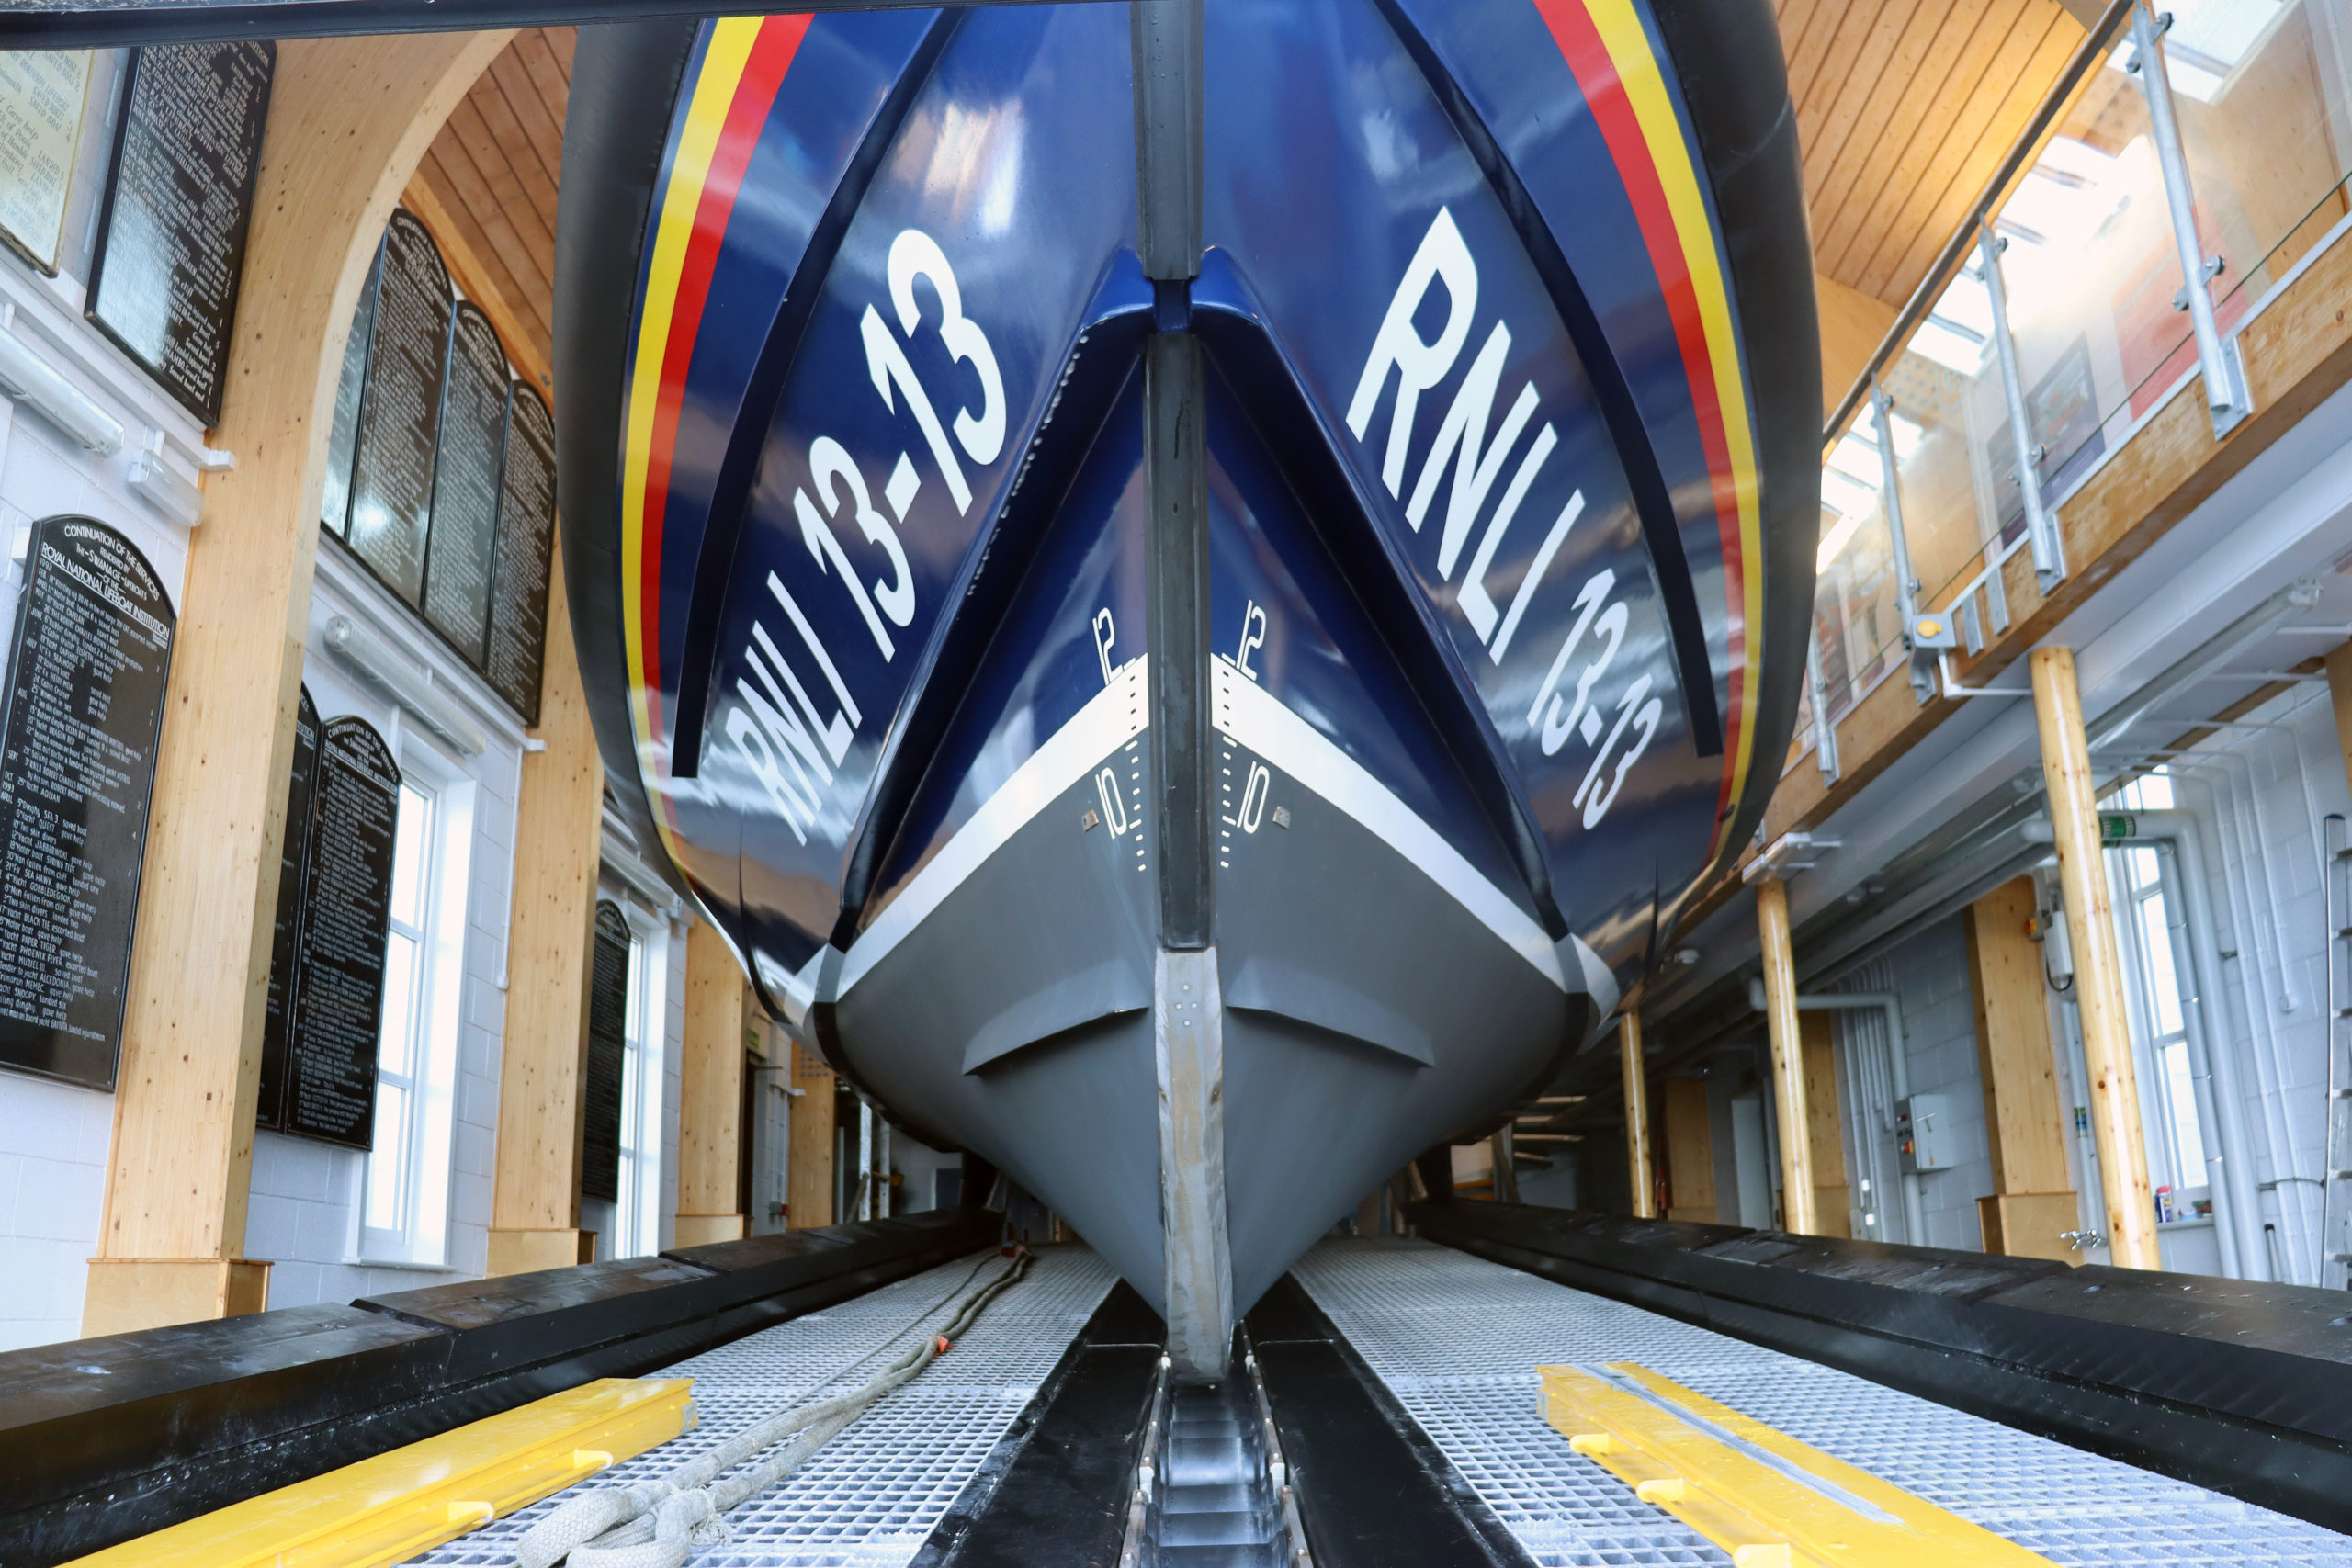 The bow of the Swanage Shannon class lifeboat 13-13